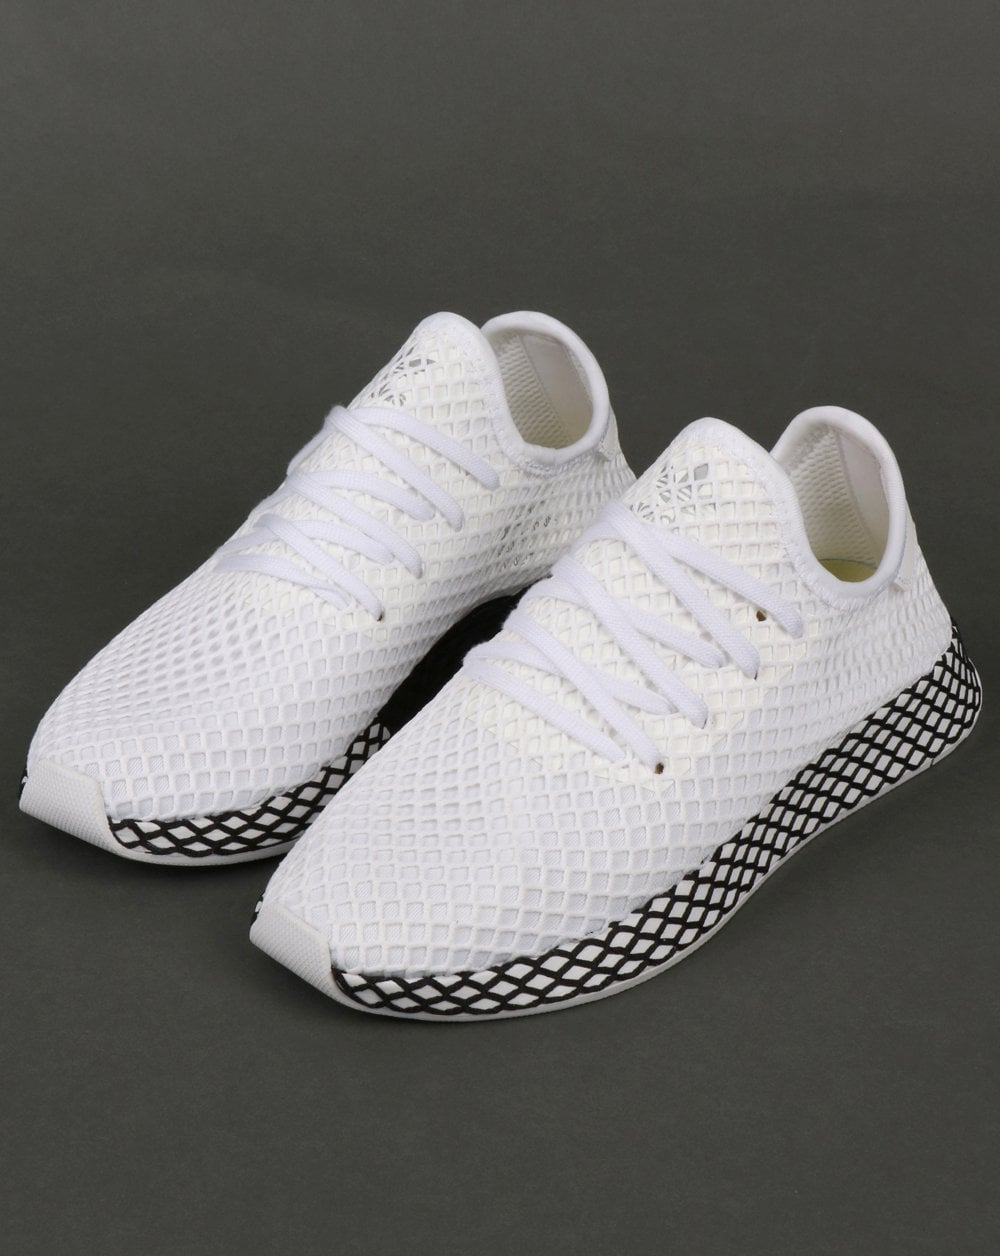 294a0a4417f02 adidas Trainers Adidas Deerupt Runner Trainers White White Black